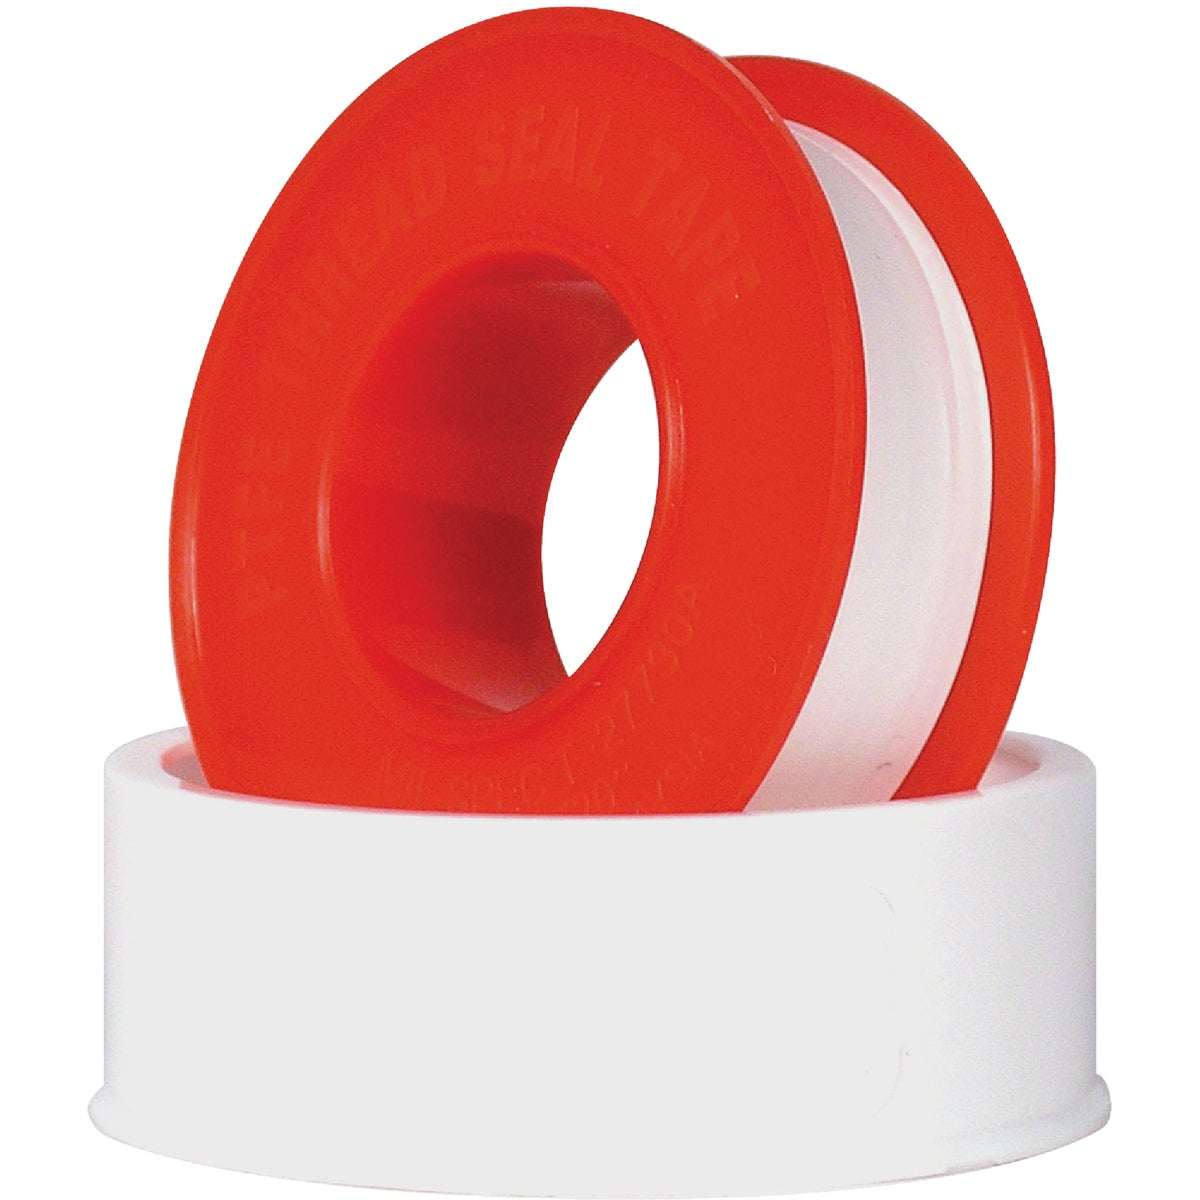 1/2X520 PTFE TAPE - 017117-350H by Wm H Harvey Co